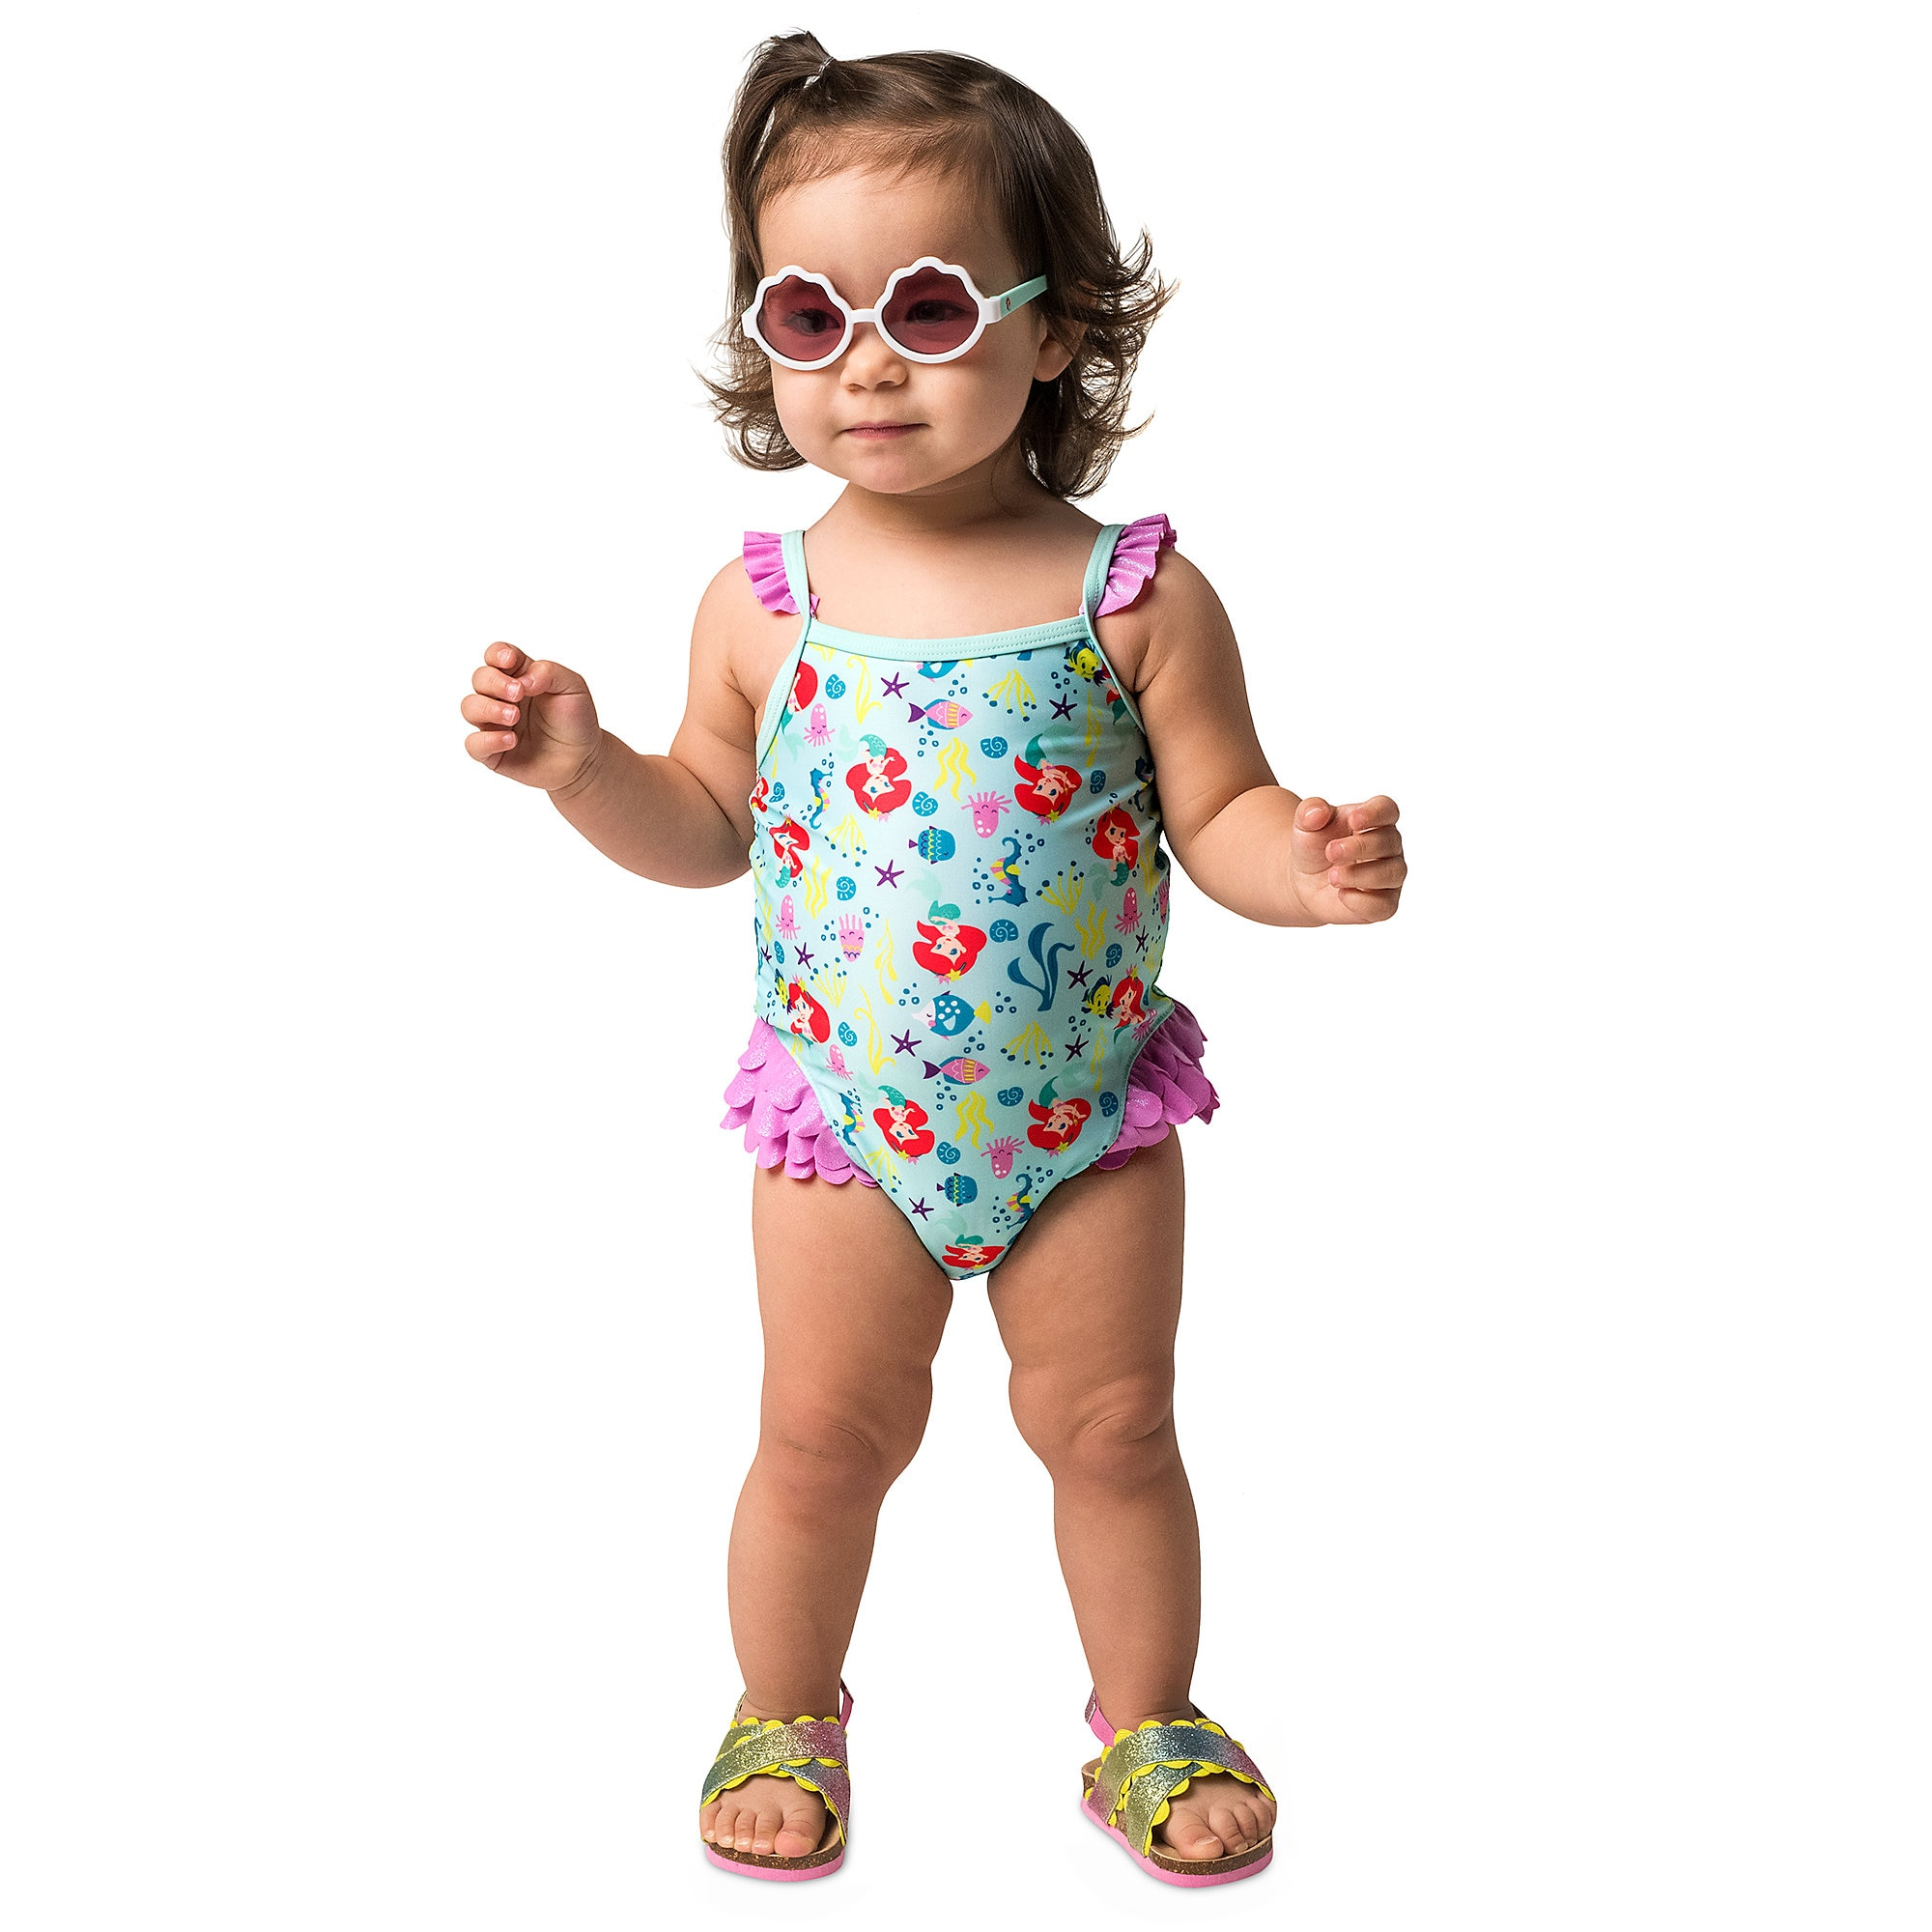 Ariel Swimwear Collection for Baby